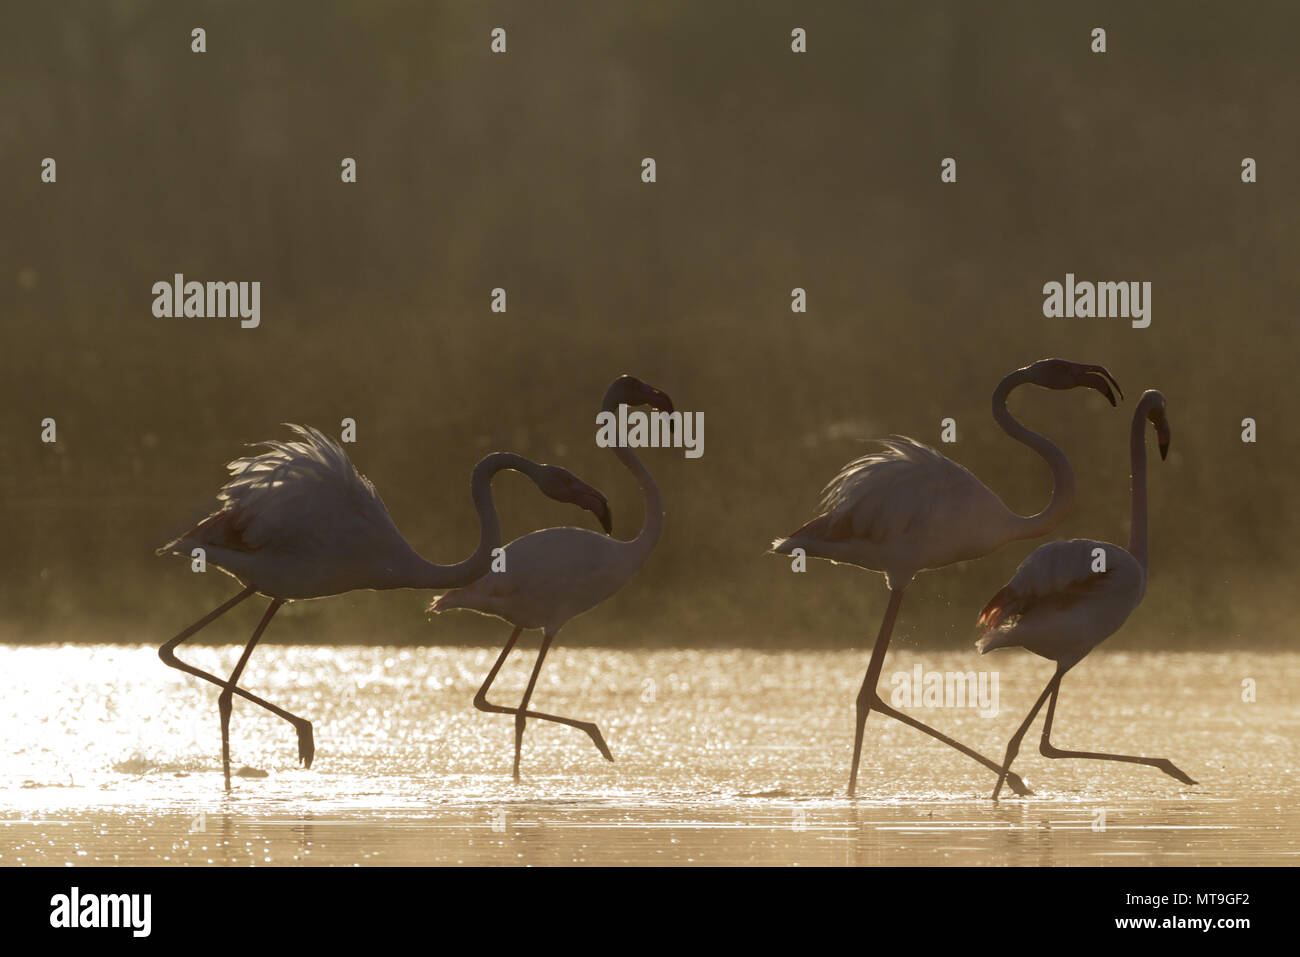 Greater Flamingo (Phoenicopterus roseus). Quarrelling at a cold and misty morning at the Laguna de Fuente de Piedra near the town of Antequera. This is the largest natural lake in Andalusia and Europe's only inland breeding ground for this species. Malaga province, Andalusia, Spain - Stock Image